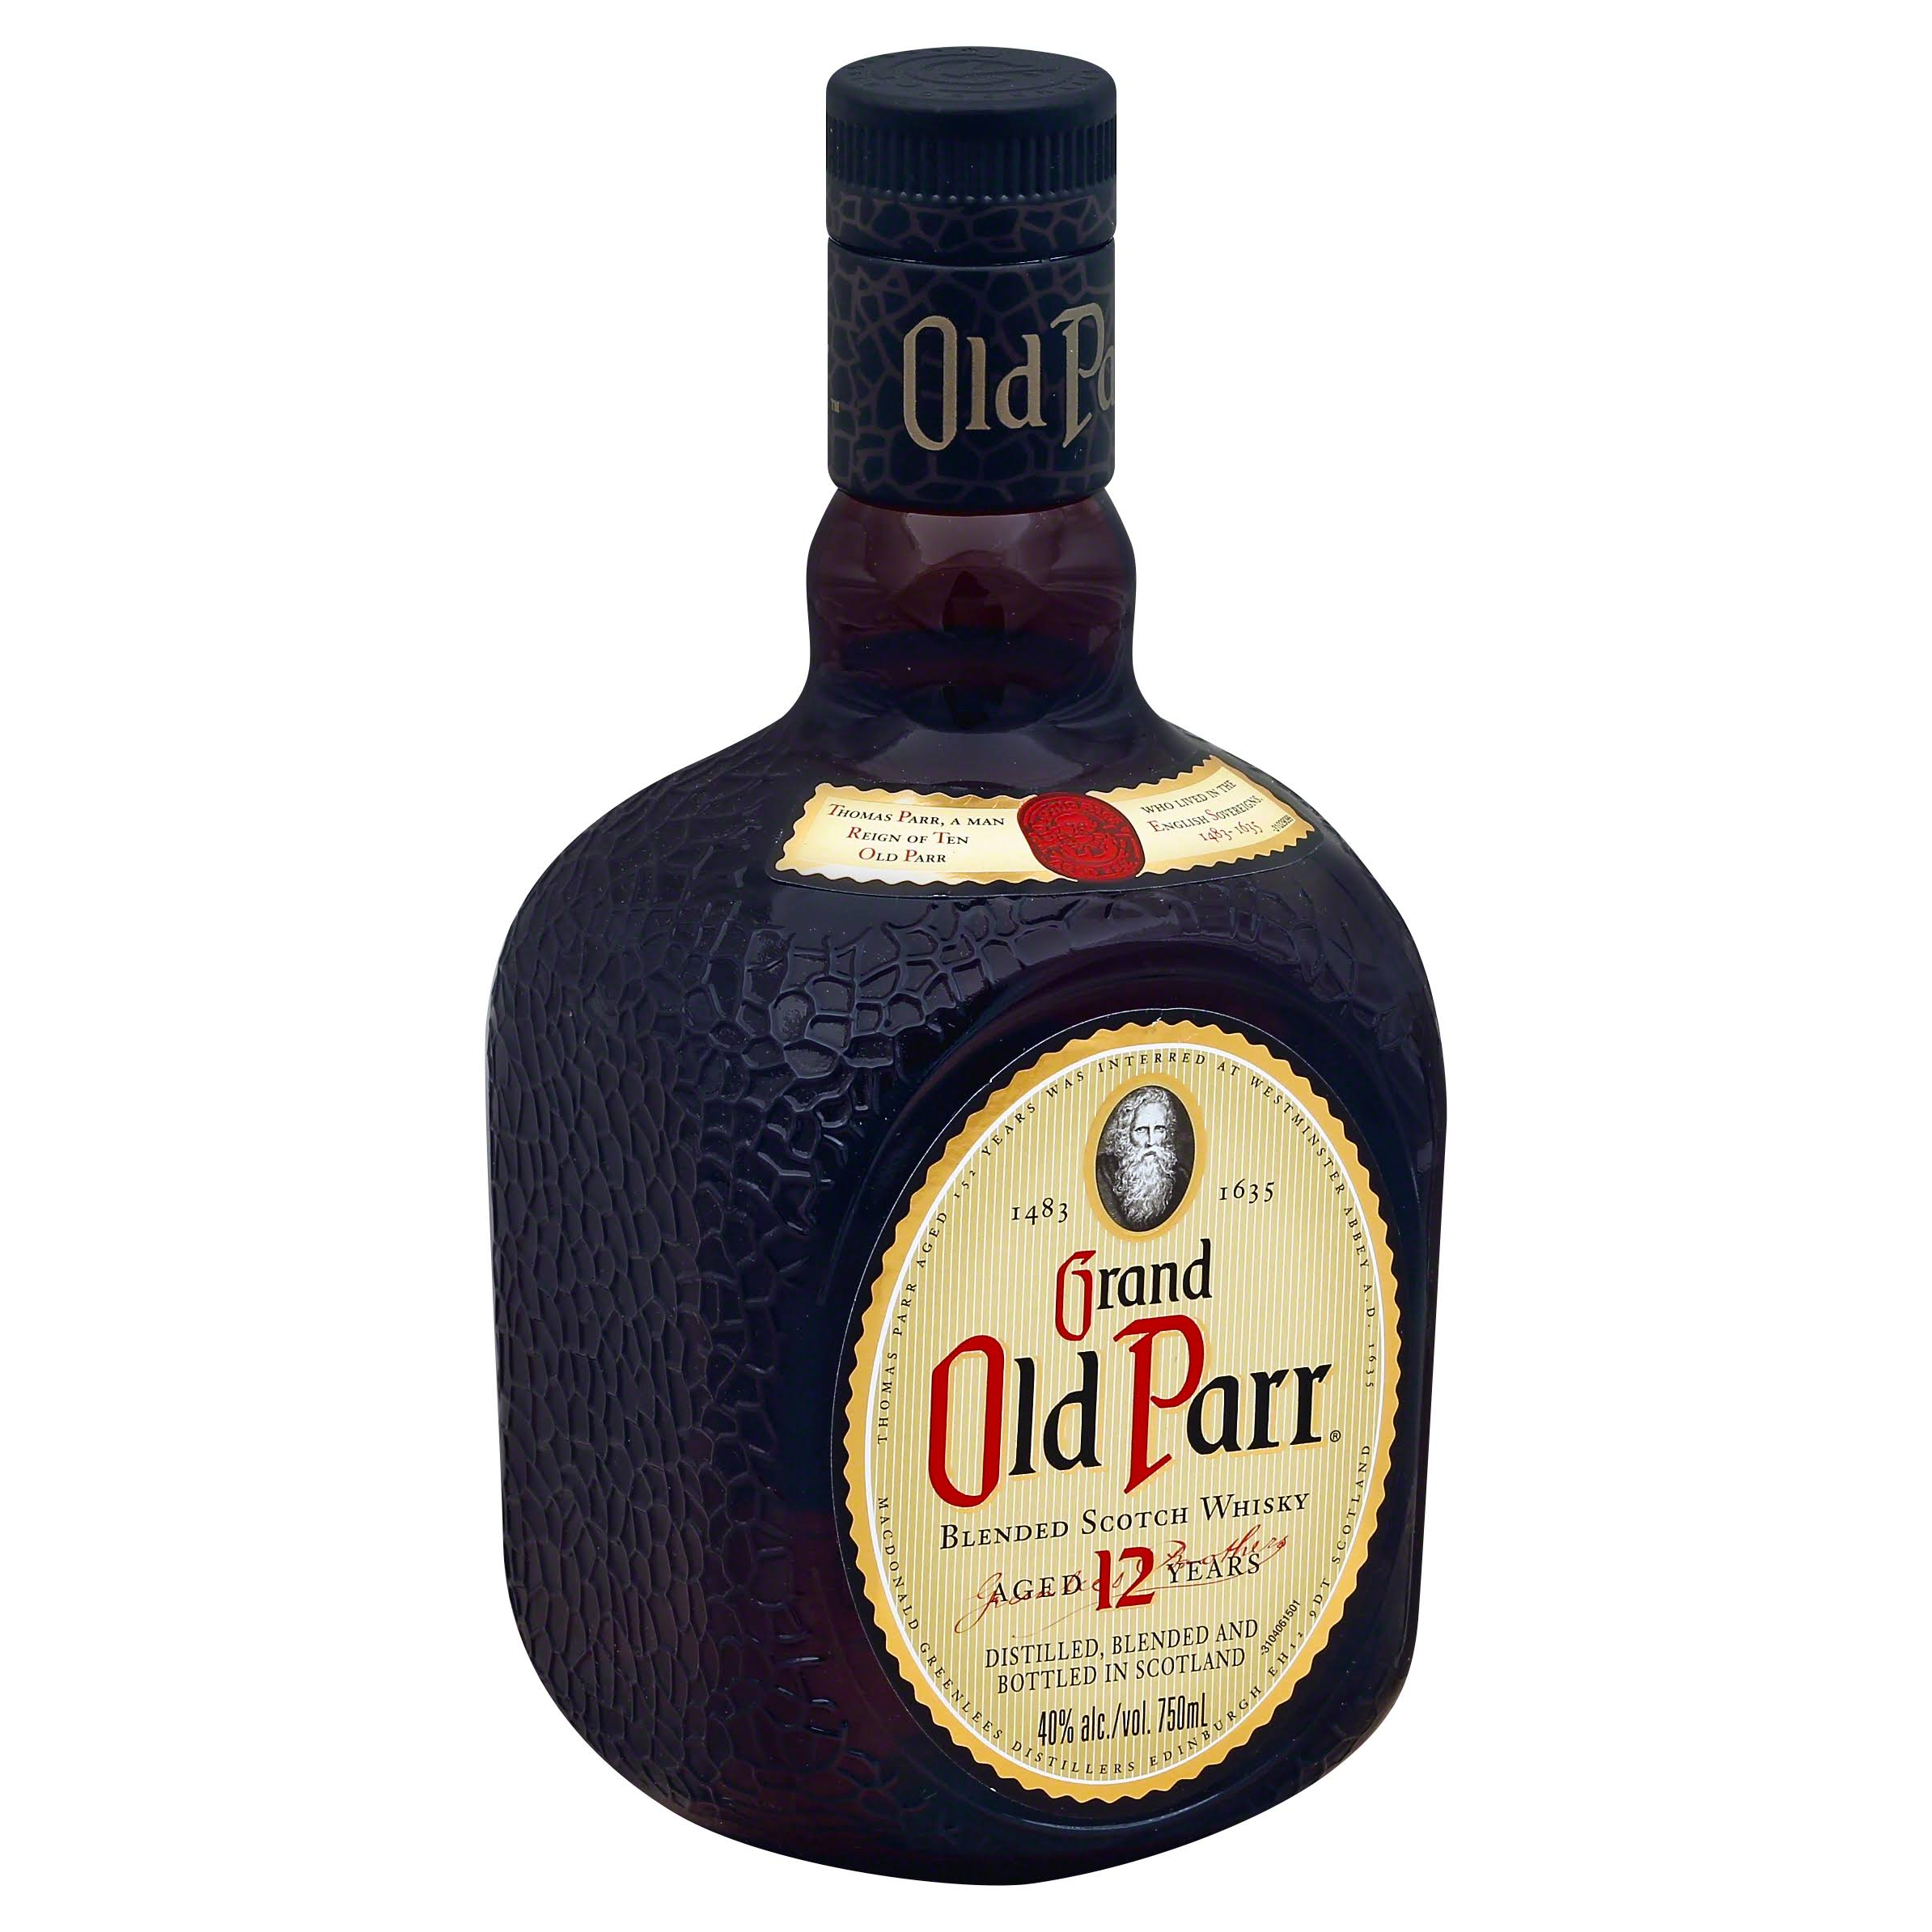 Grand Old Par Blended Scotch Whisky